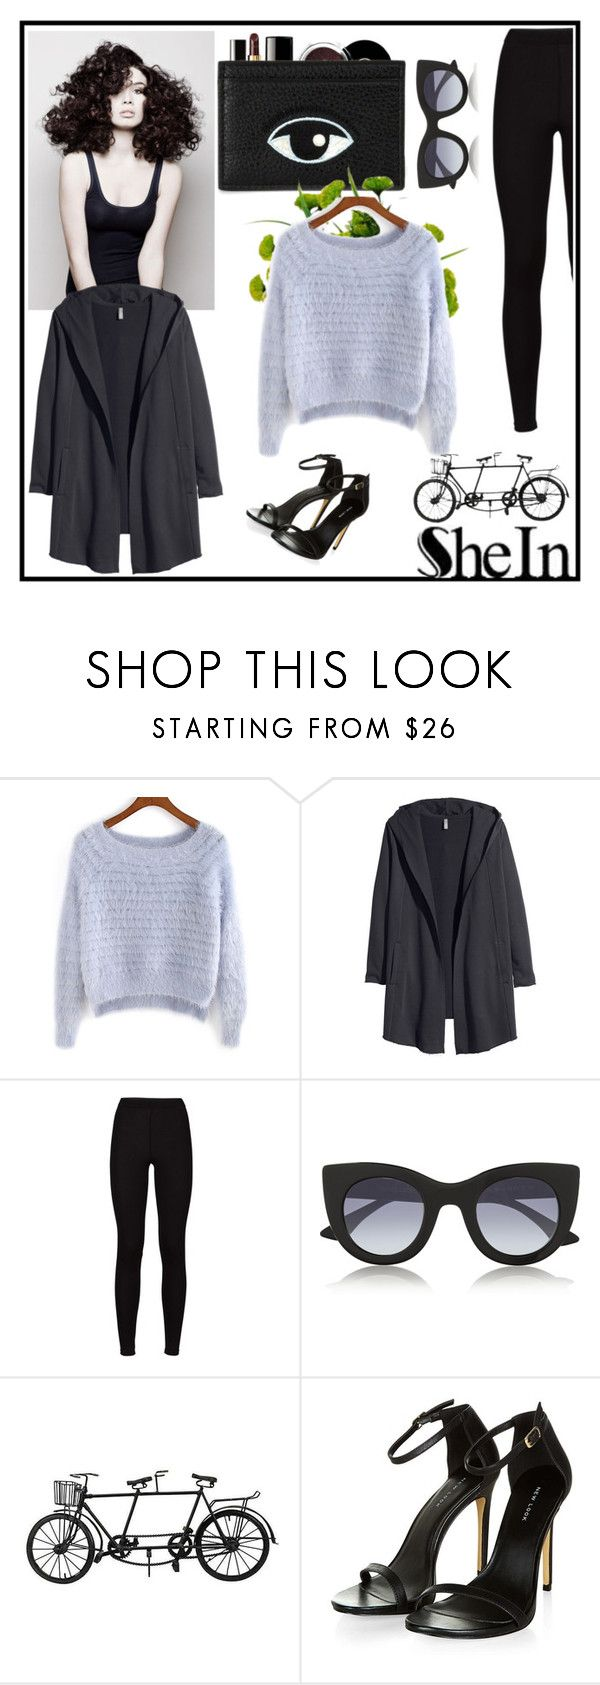 """""""Shein <3"""" by know-urself ❤ liked on Polyvore featuring Chanel, Angelo, H&M, Thierry Lasry and shein"""